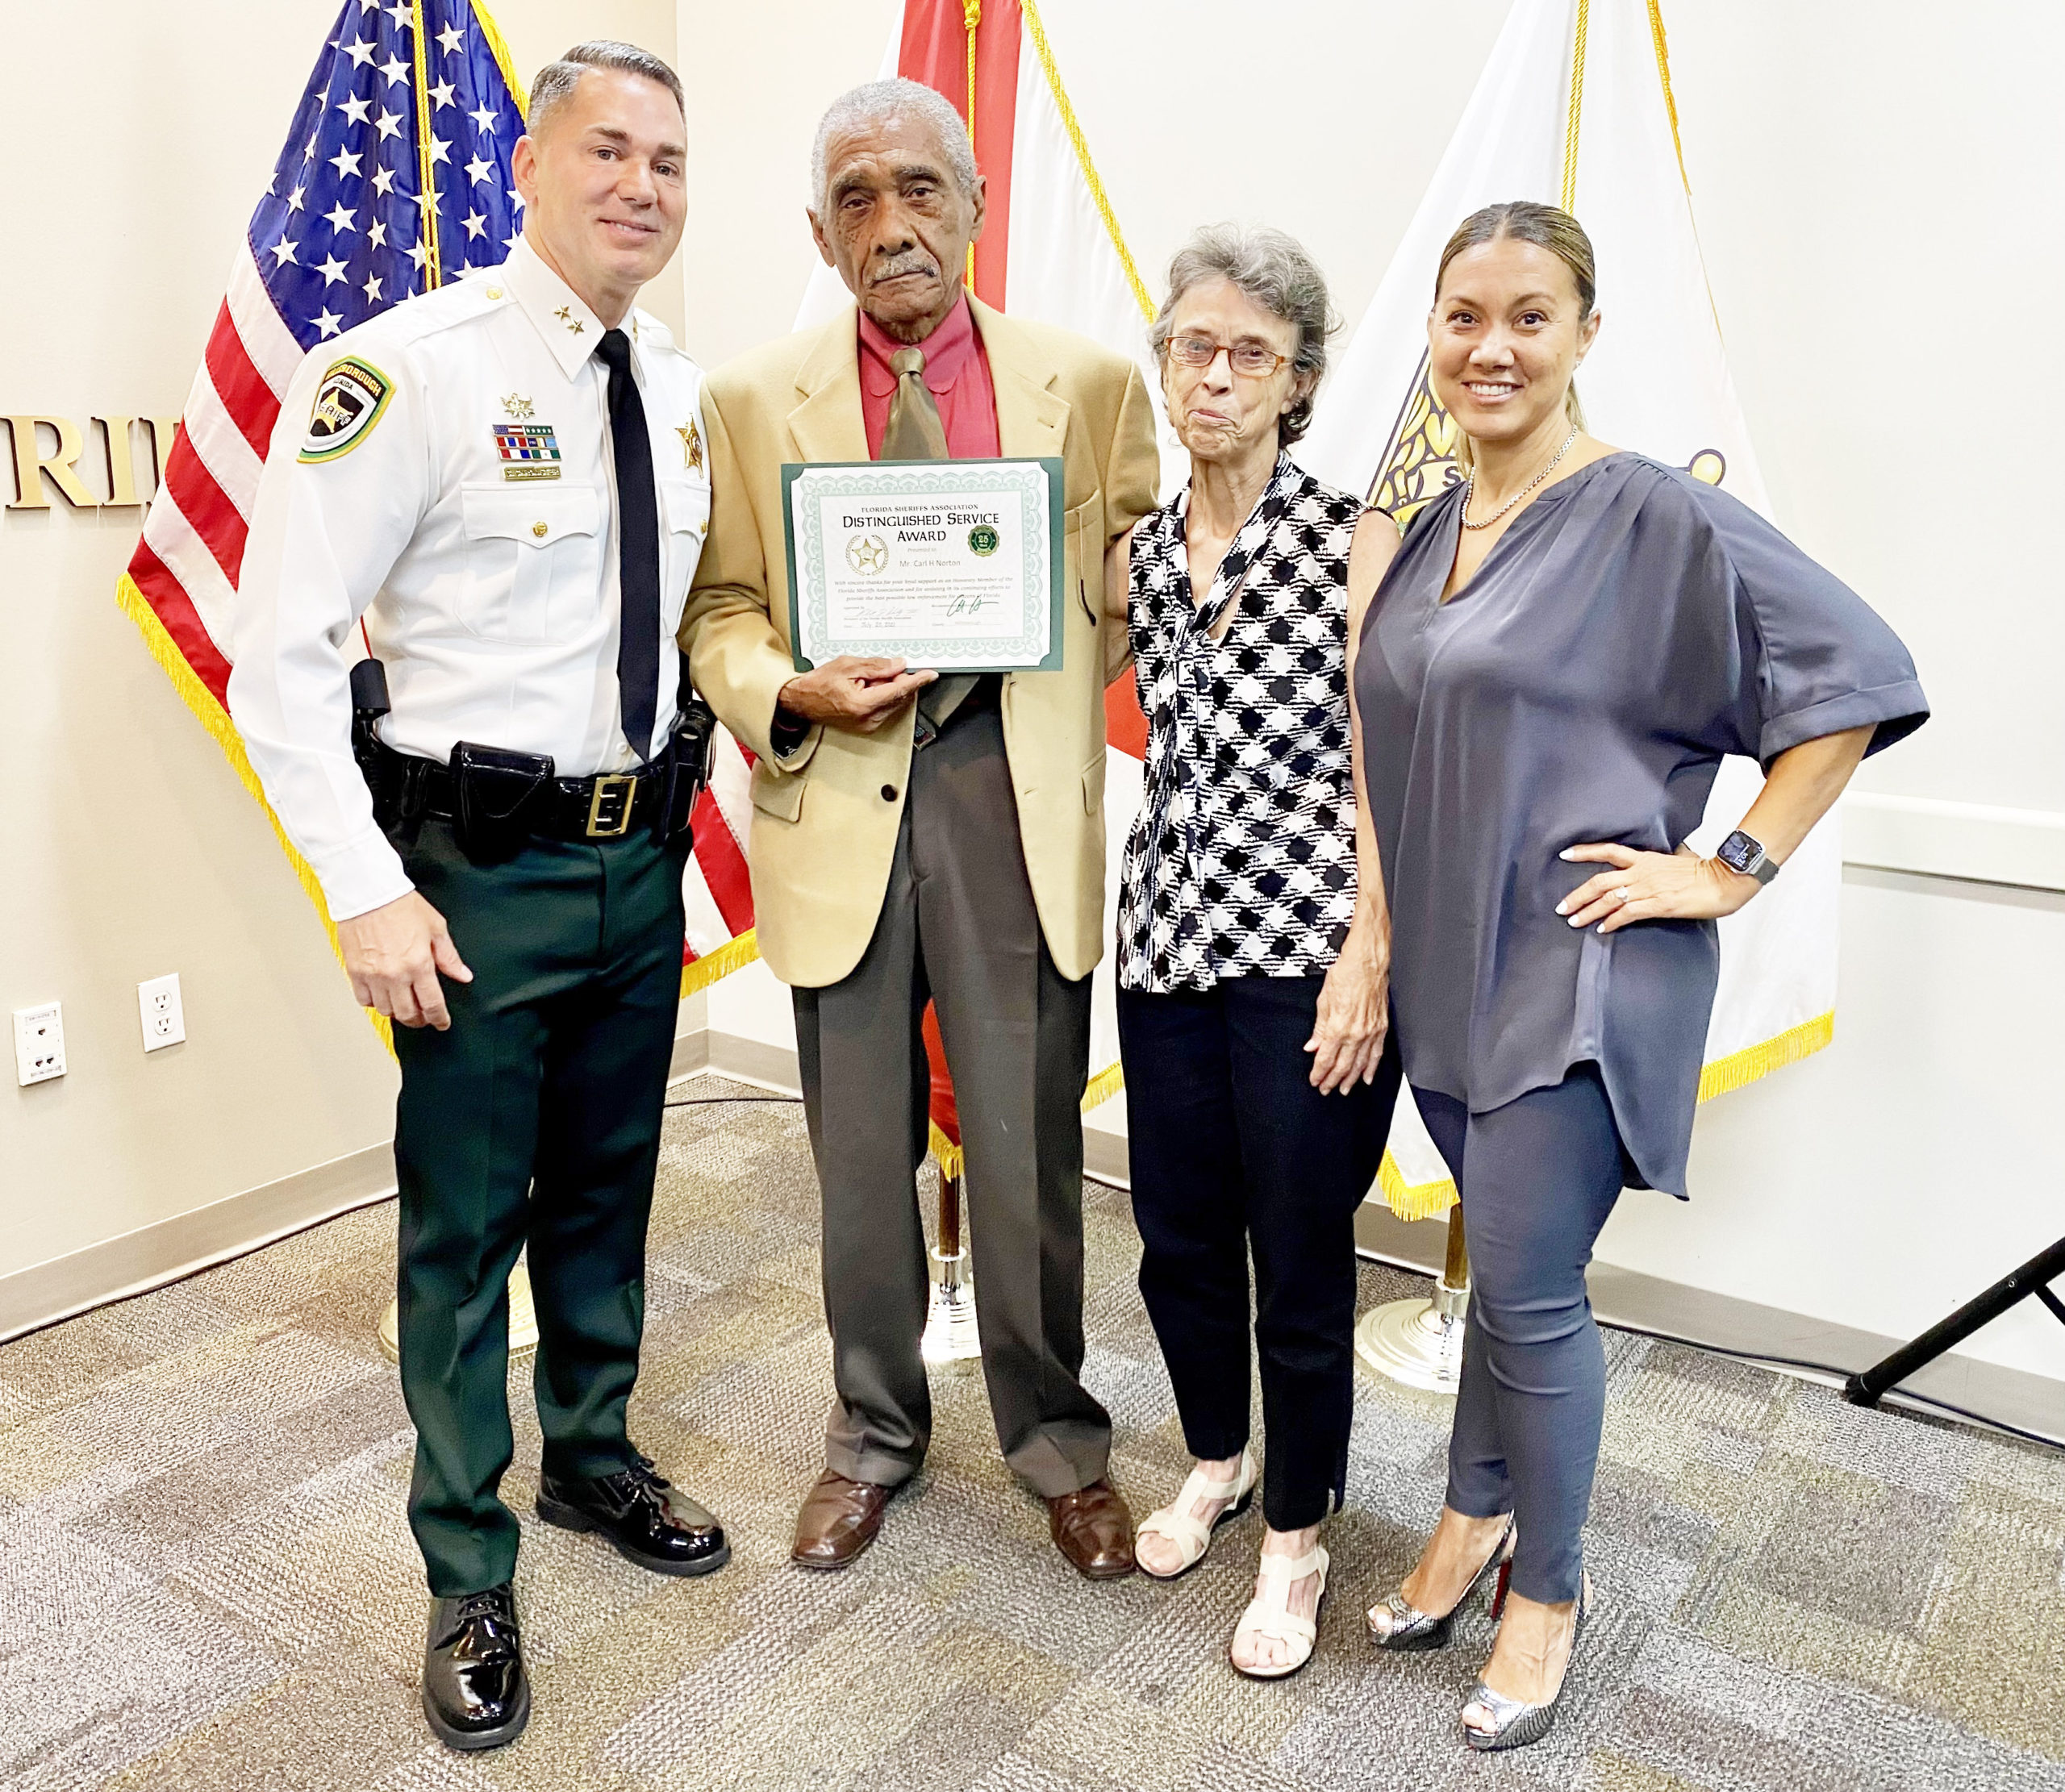 SHERIFF PRESENTS DISTINGUISHED SERVICE AWARD TO HONORARY MEMBER